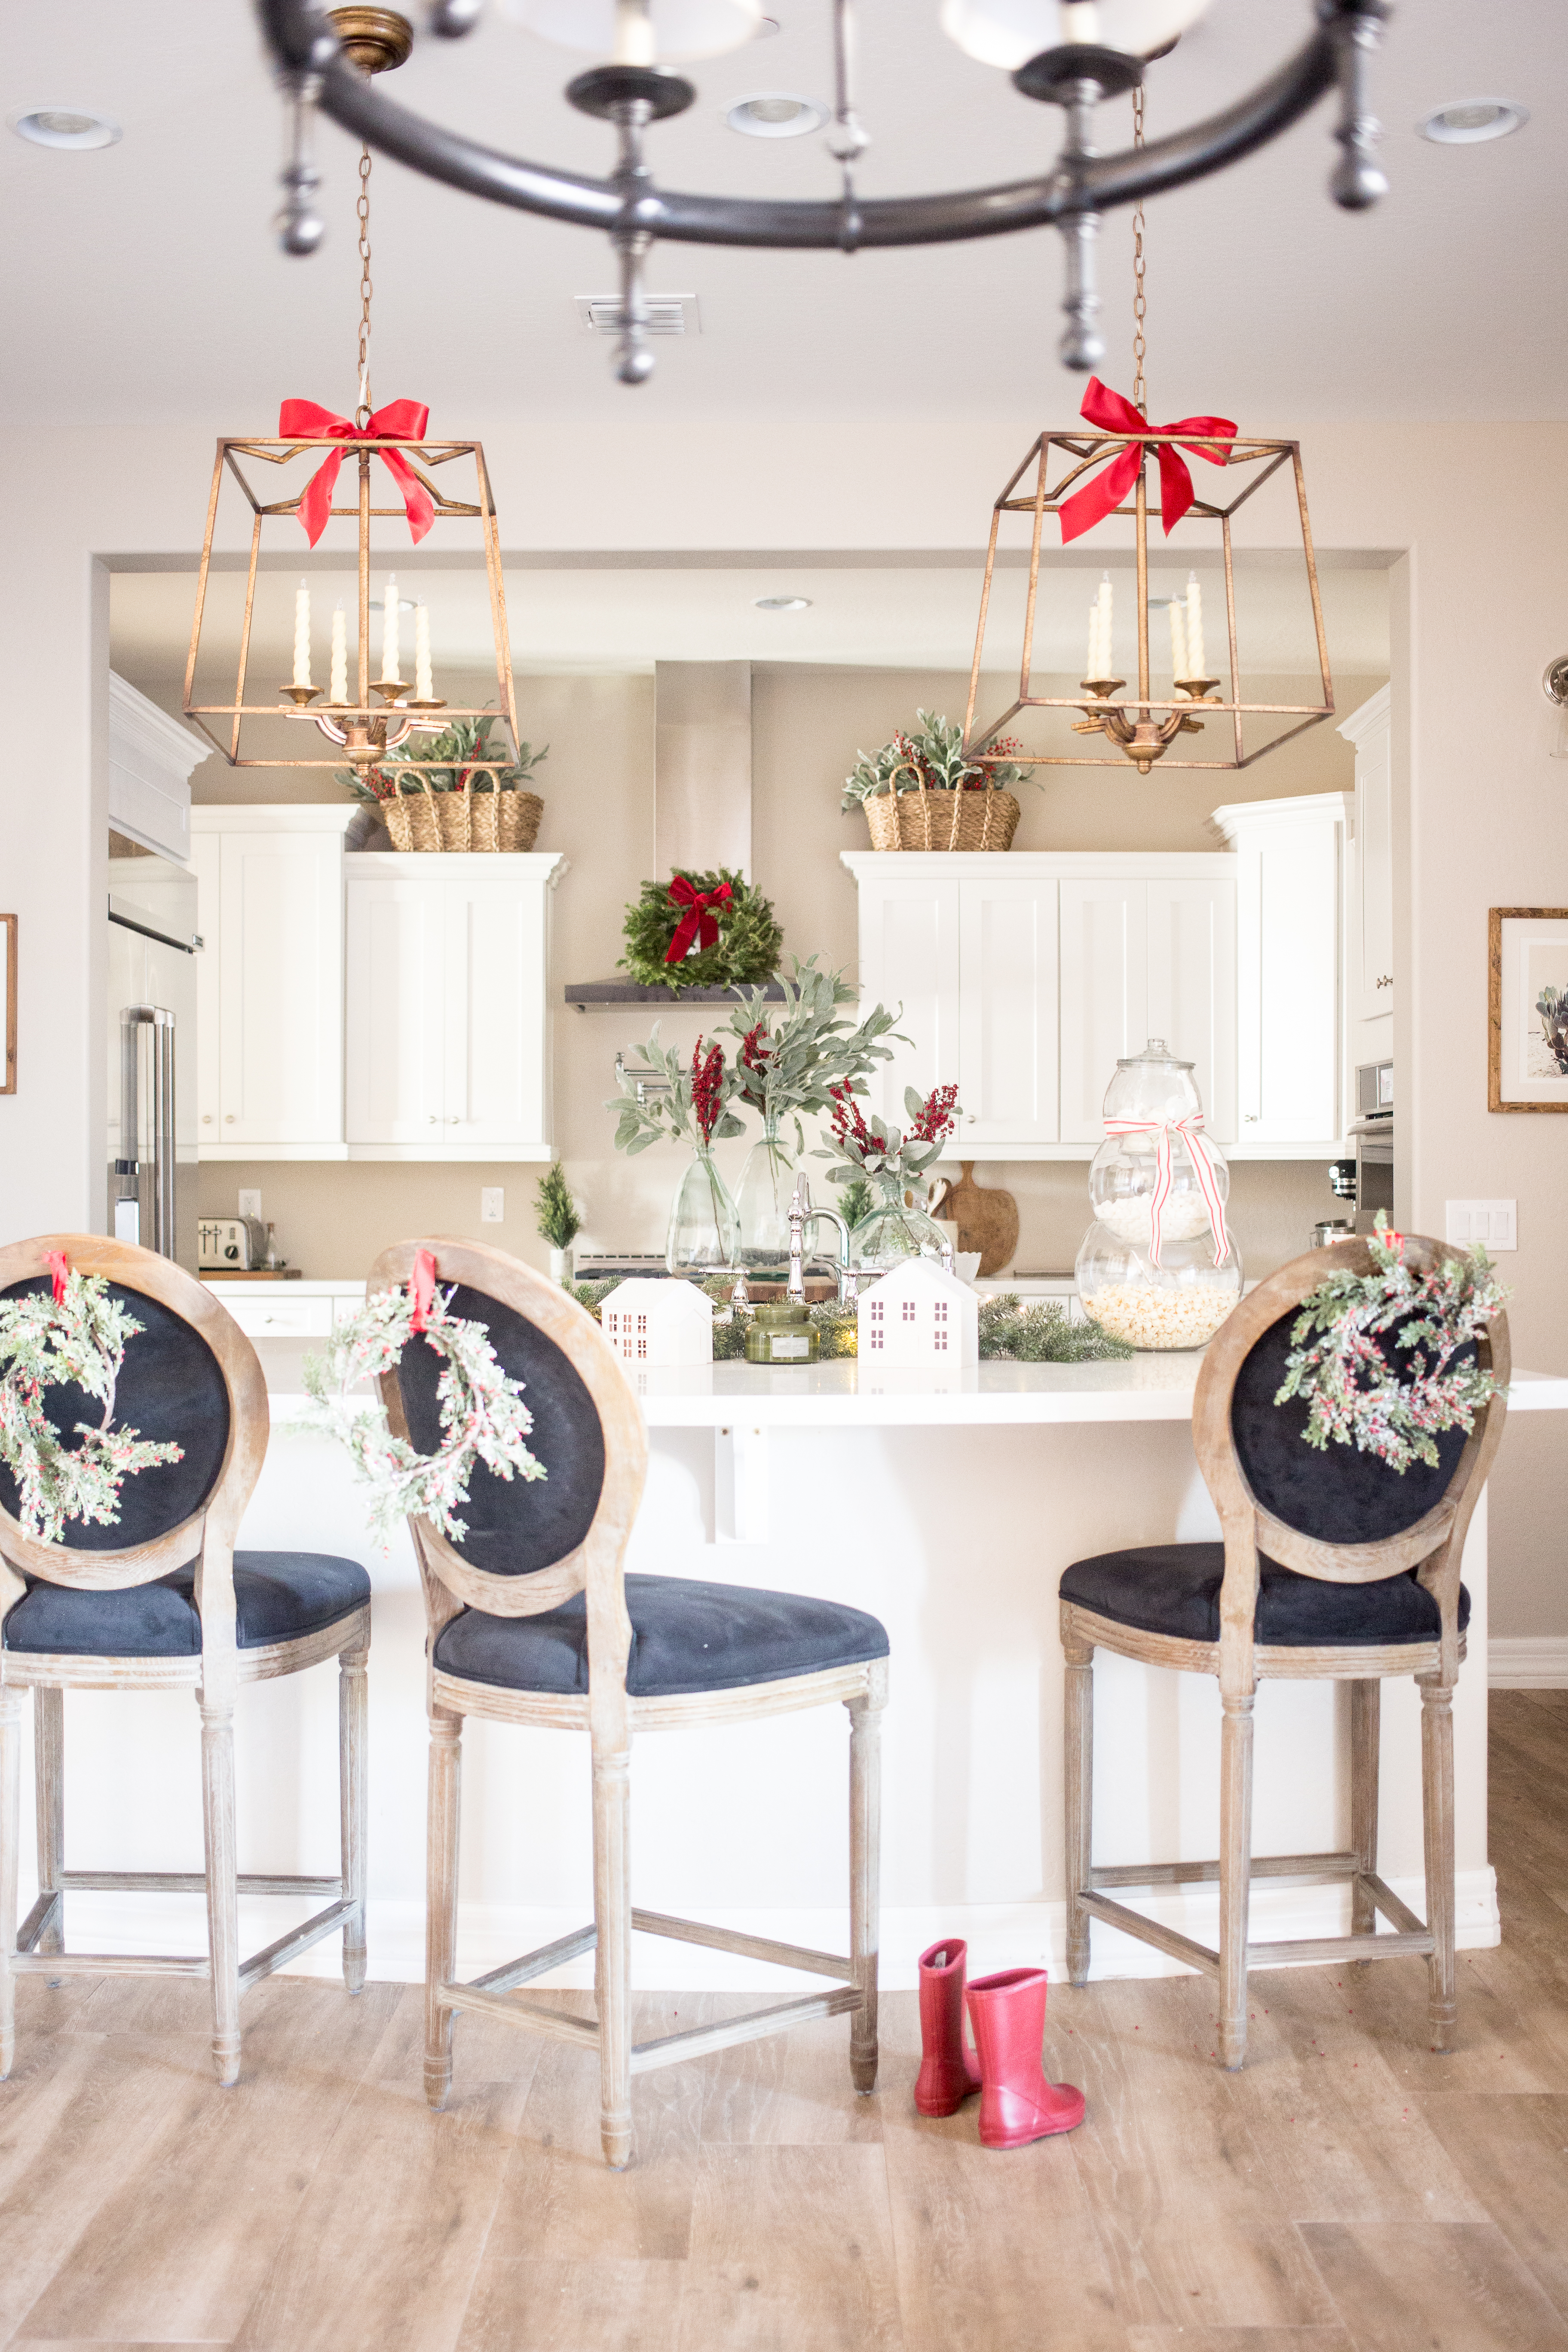 just-destiny-chirstmas-house-5